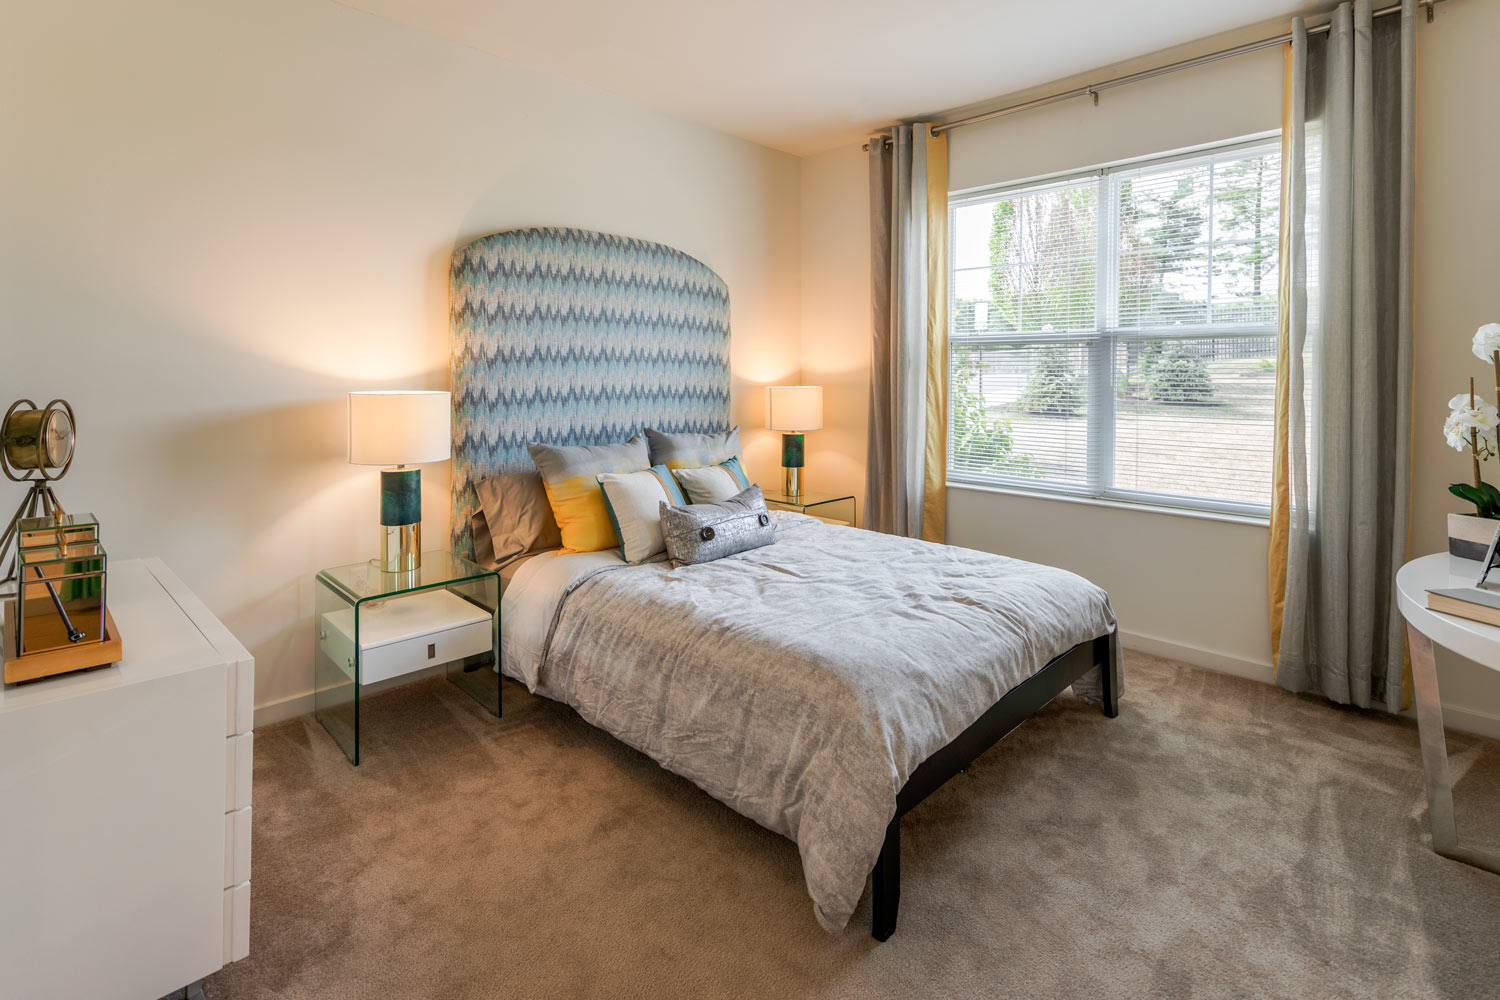 bedroom with bed, night stands, dresser and large window - newark de apartments